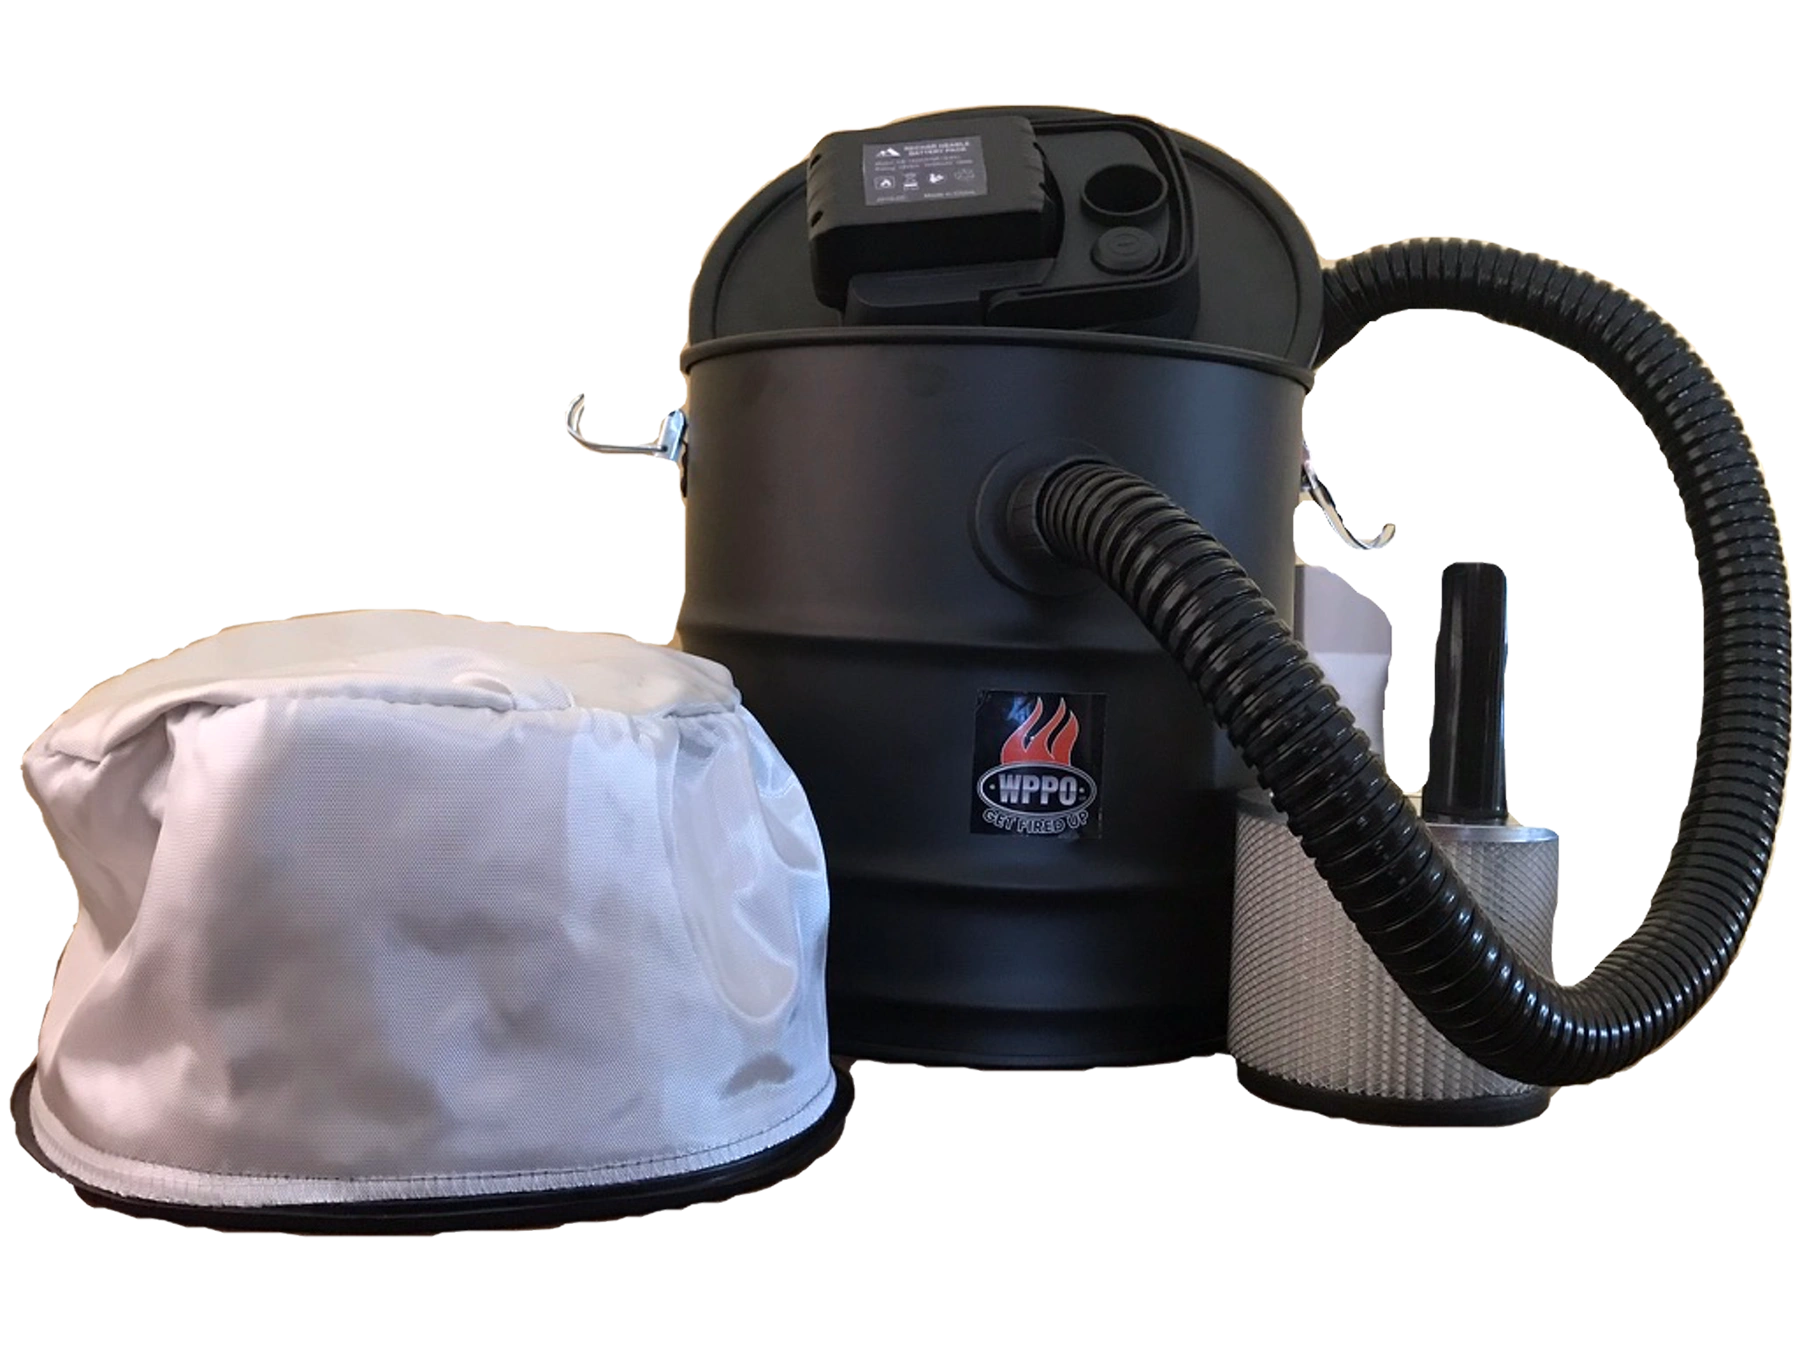 18v Ash Vacuum shown with fire retardant and HEPA filter